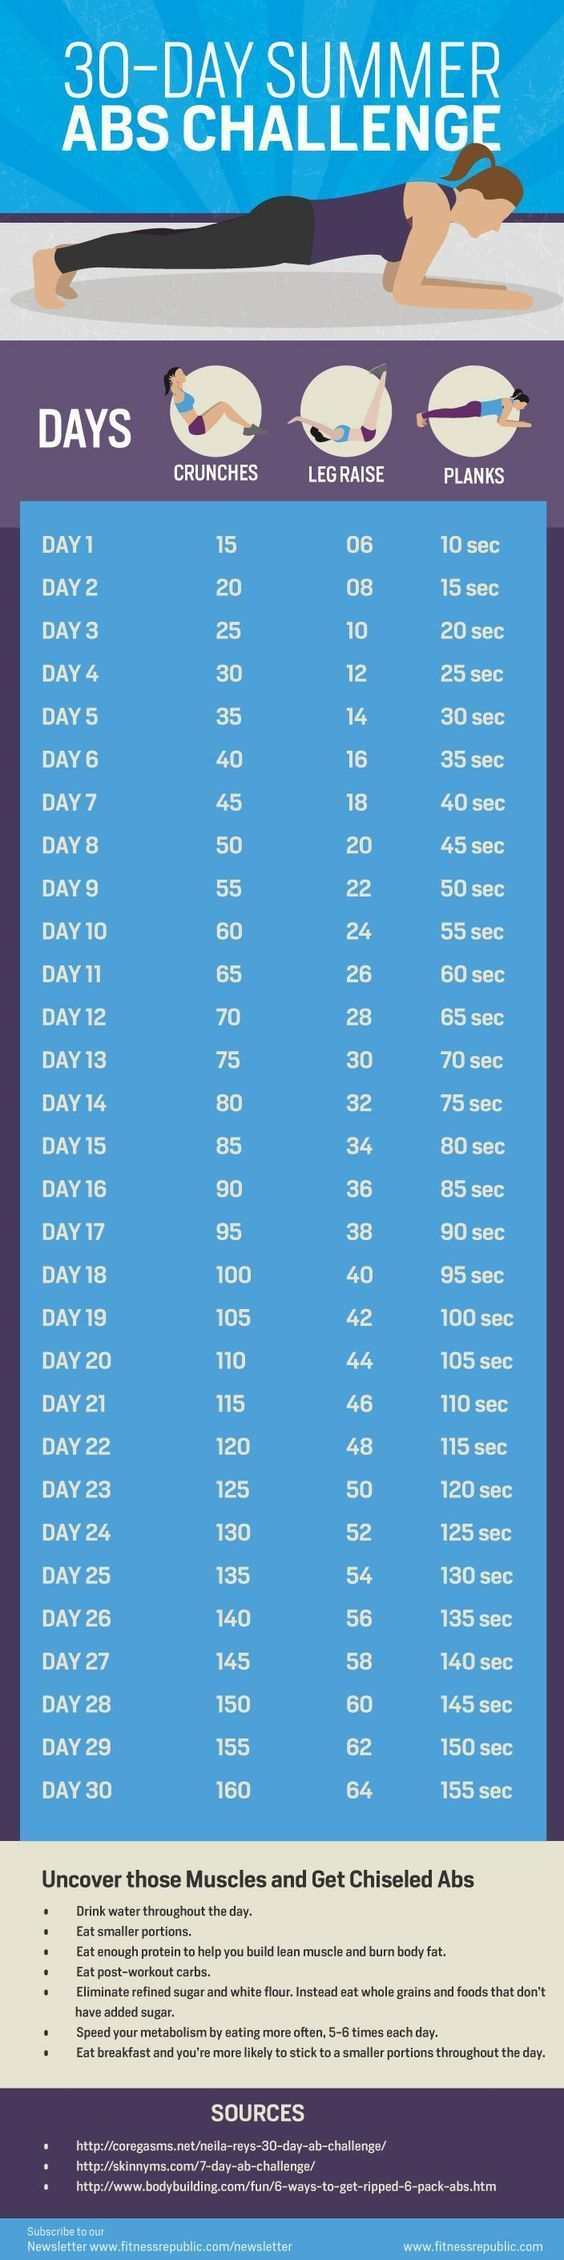 637 best BALANCED LIFE images on Pinterest | Ab workouts, Chest ...